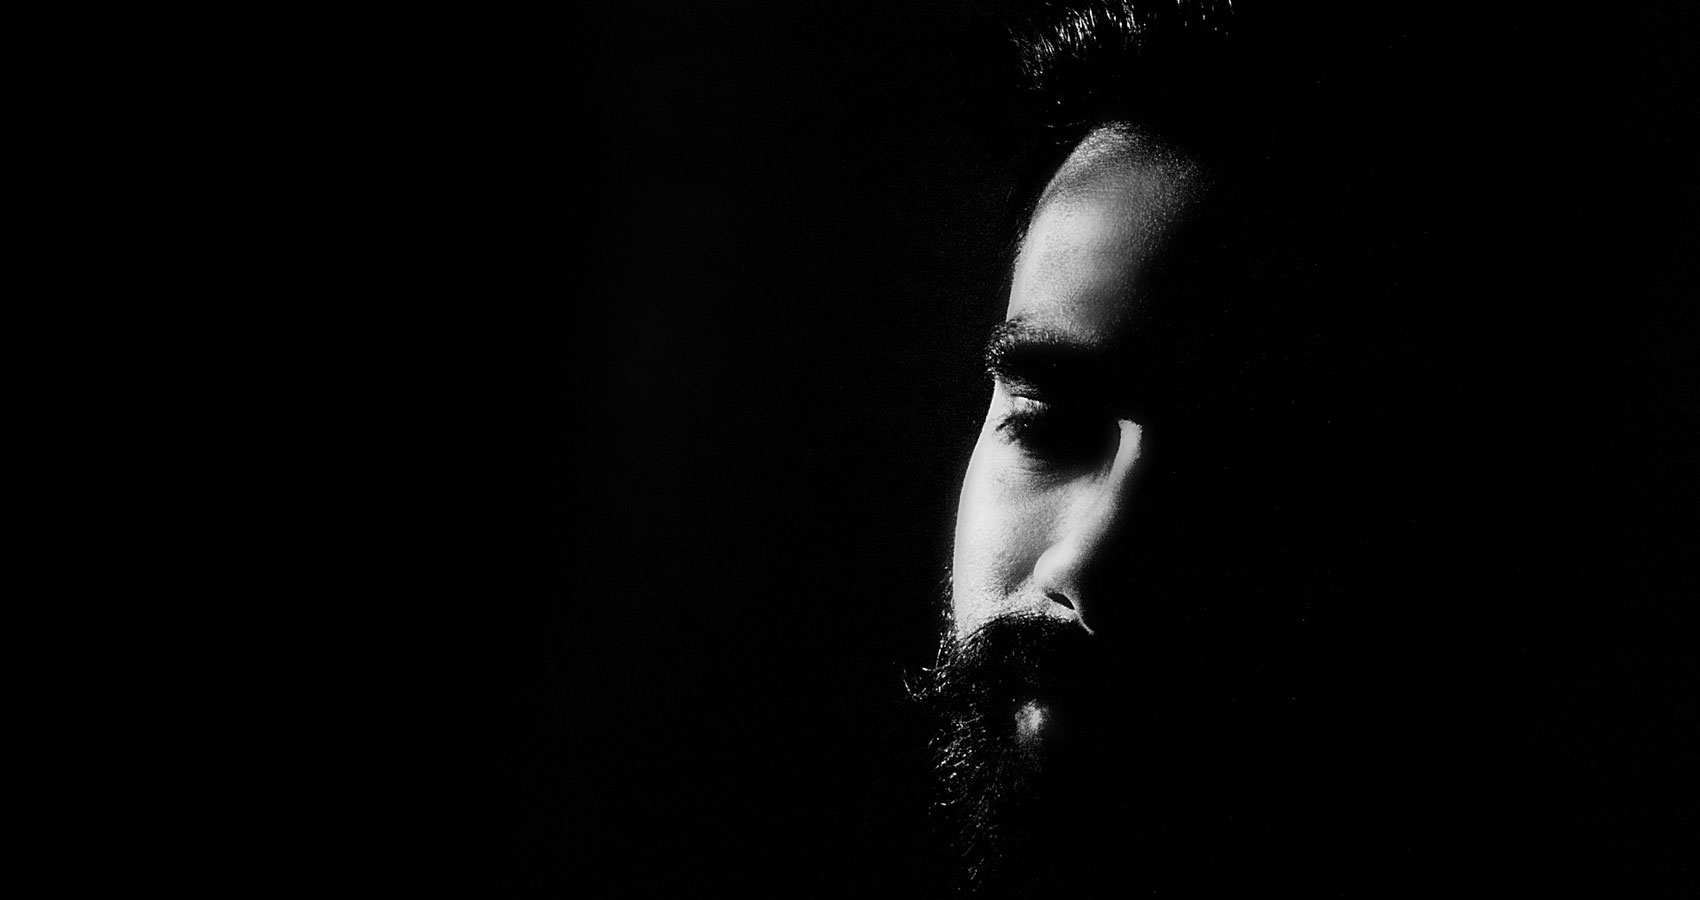 The Beard written by Asad Mian at Spillwords.com